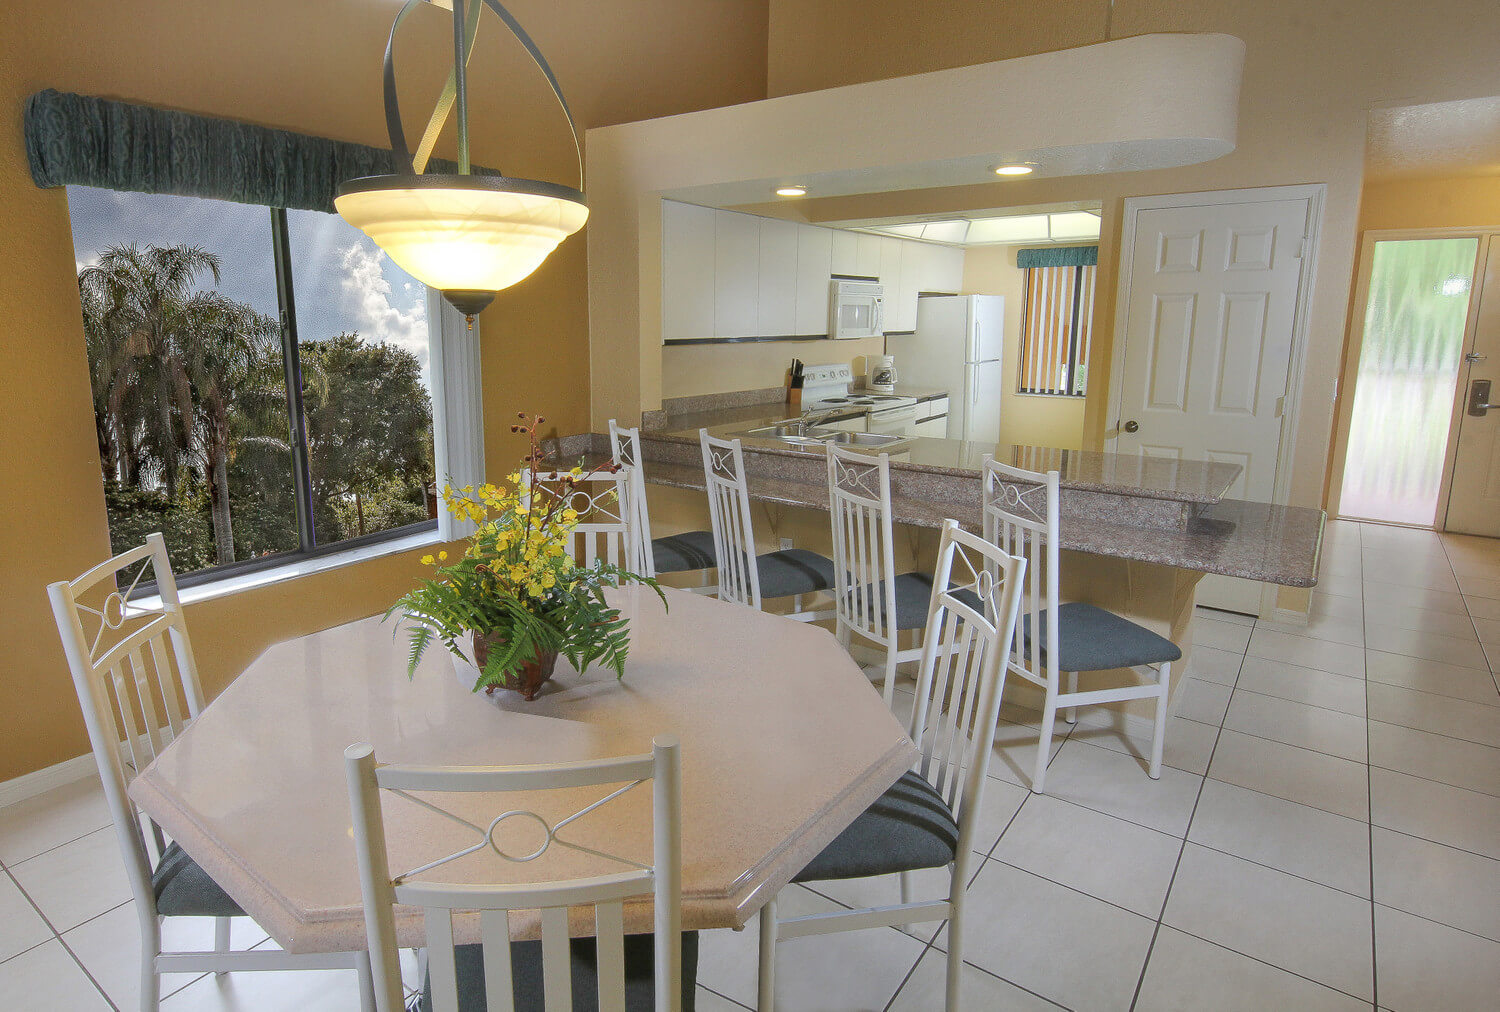 Two Bedroom Villa With Loft Dining And Kitchen Area Westgate Vacation Villas Resort